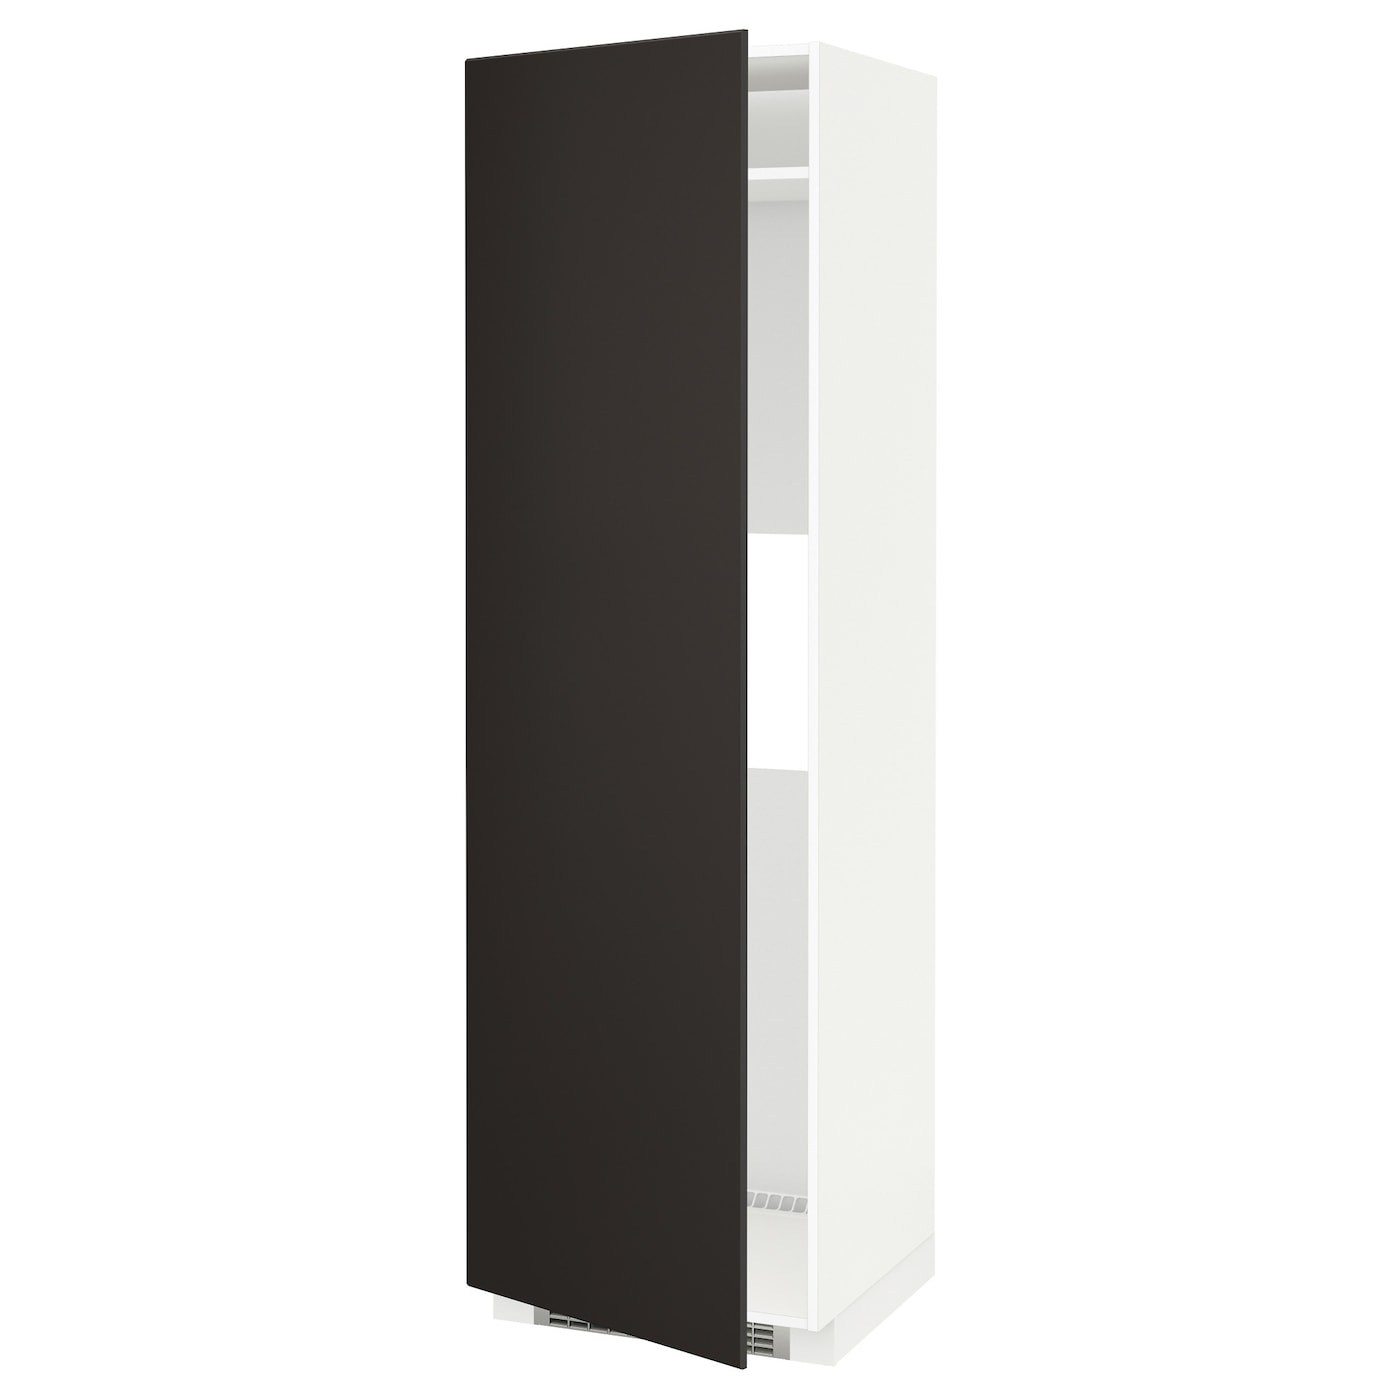 IKEA METOD high cab f fridge or freezer w door Sturdy frame construction, 18 mm thick.